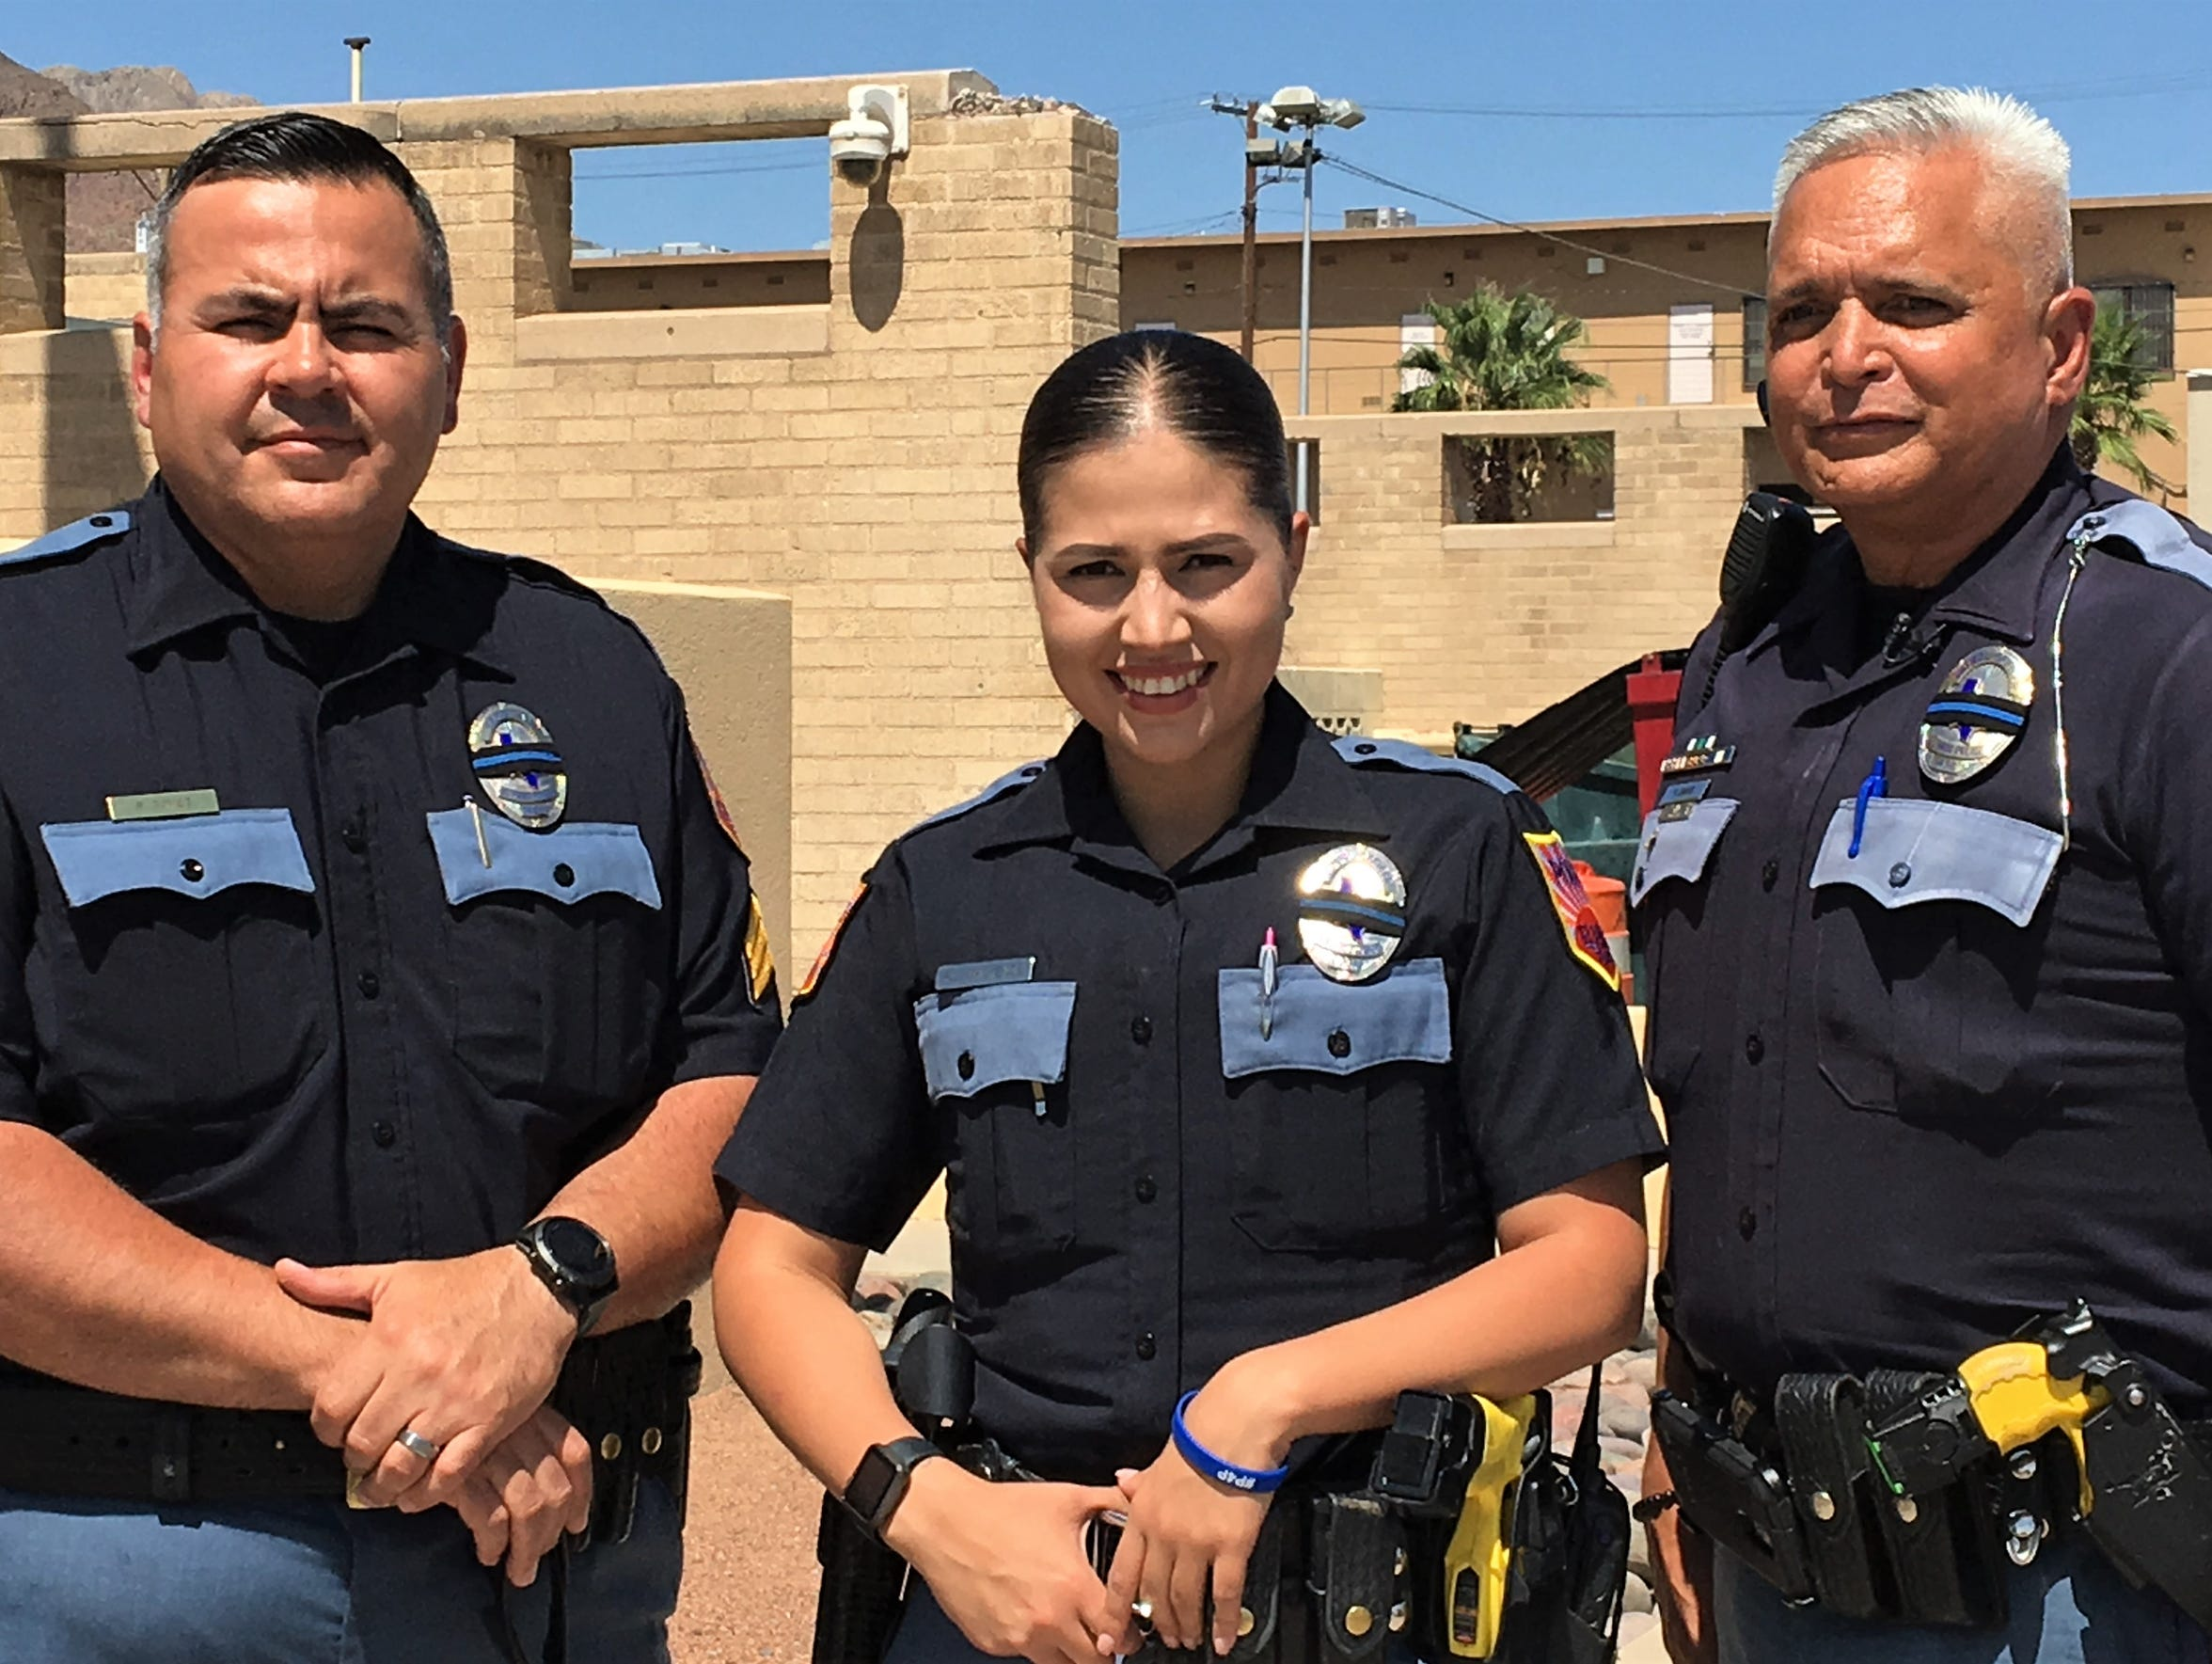 Sgt. Robert Gomez, Officer Patricia Mackenzie and Officer